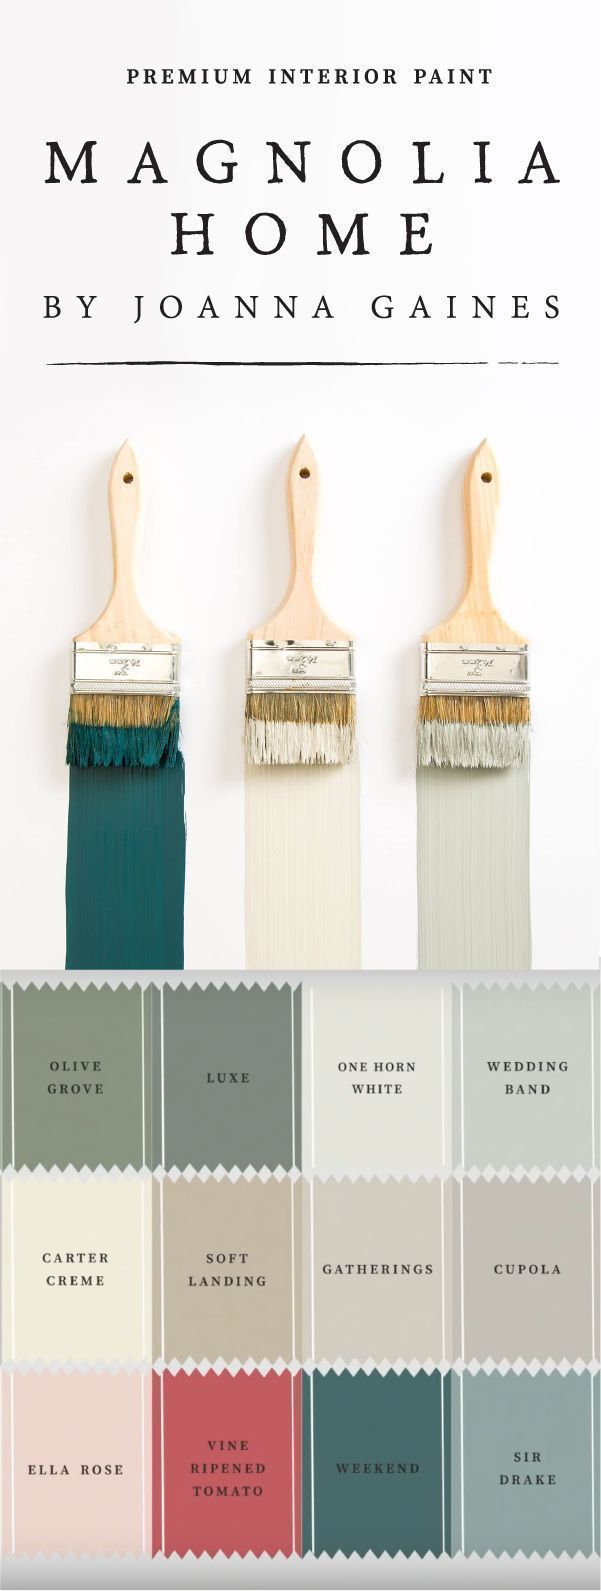 The Magnolia Home Paint collection from designer Joanna Gaines and KILZ is full of so many classic paint colors, youll have a hard time choosing just one! Mix timeless neutral colors like One Horn White and Carter Crme with brighter colors like Vine Rip